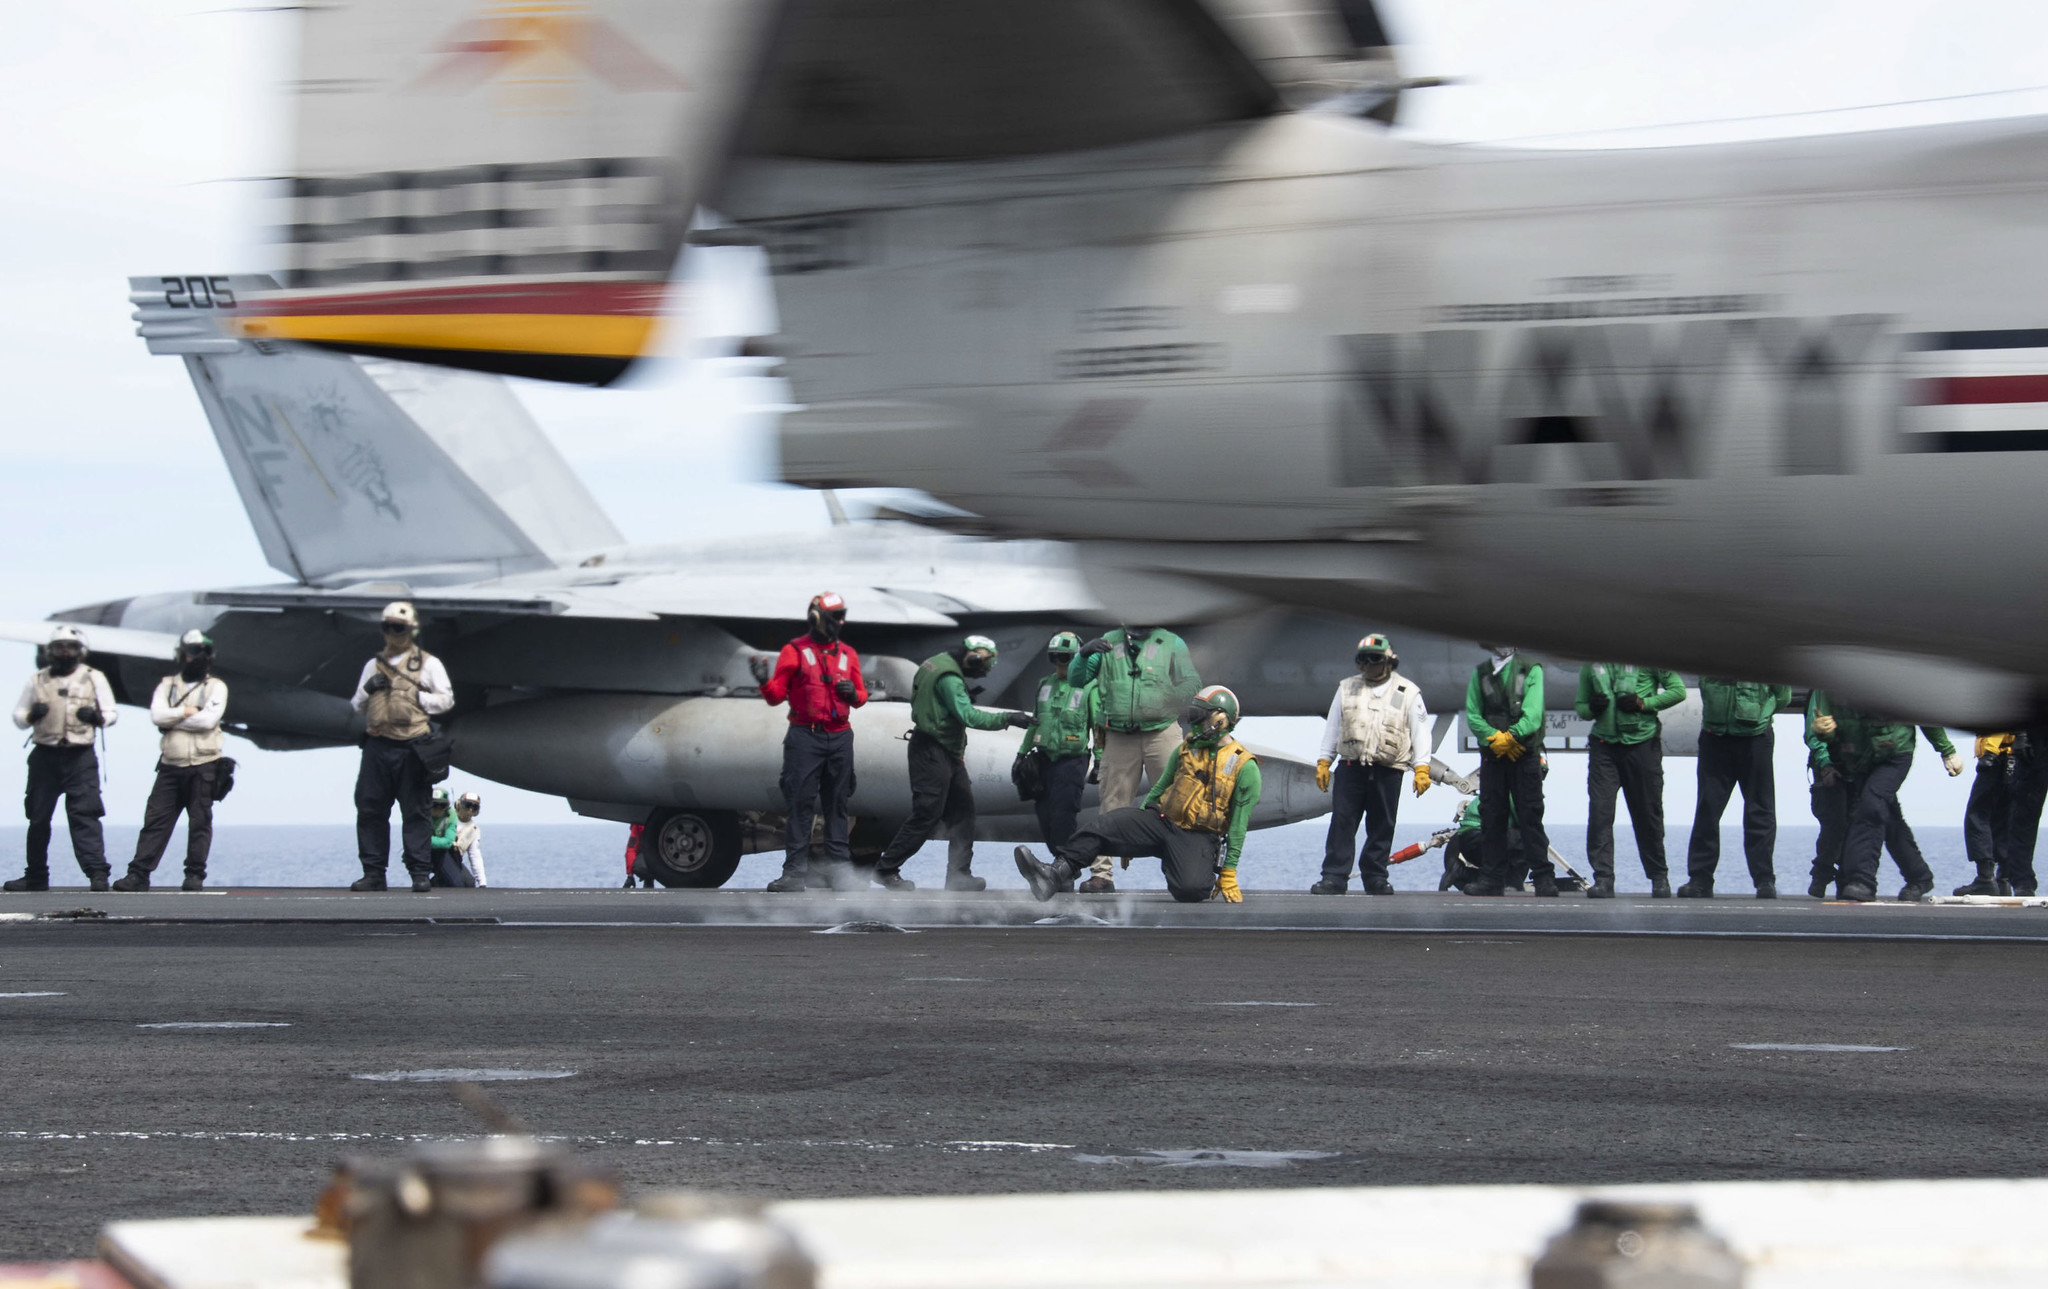 An E-2D Hawkeye launches from the flight deck of the aircraft carrier USS Ronald Reagan (CVN 76) during flight operations June 17, 2020, in the Philippine Sea. (MC3 Erica Bechard/Navy)